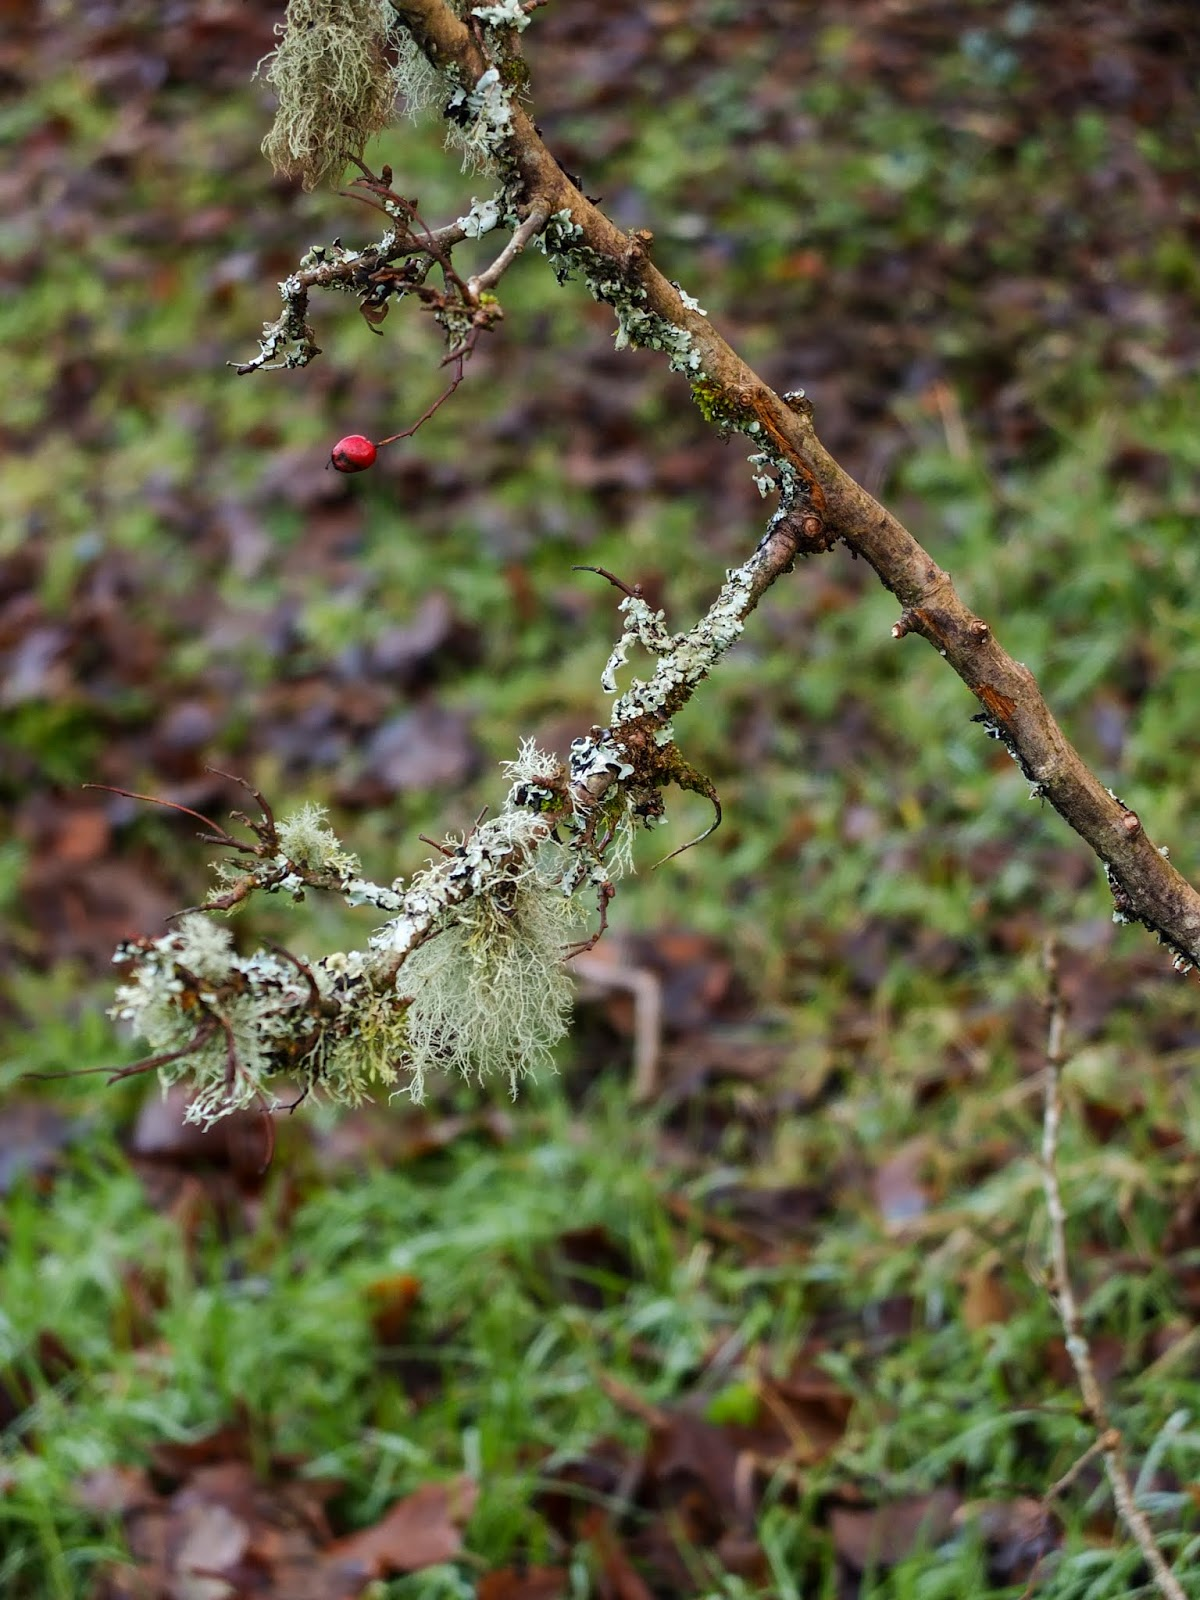 A branch of a shrub covered in light green moss.